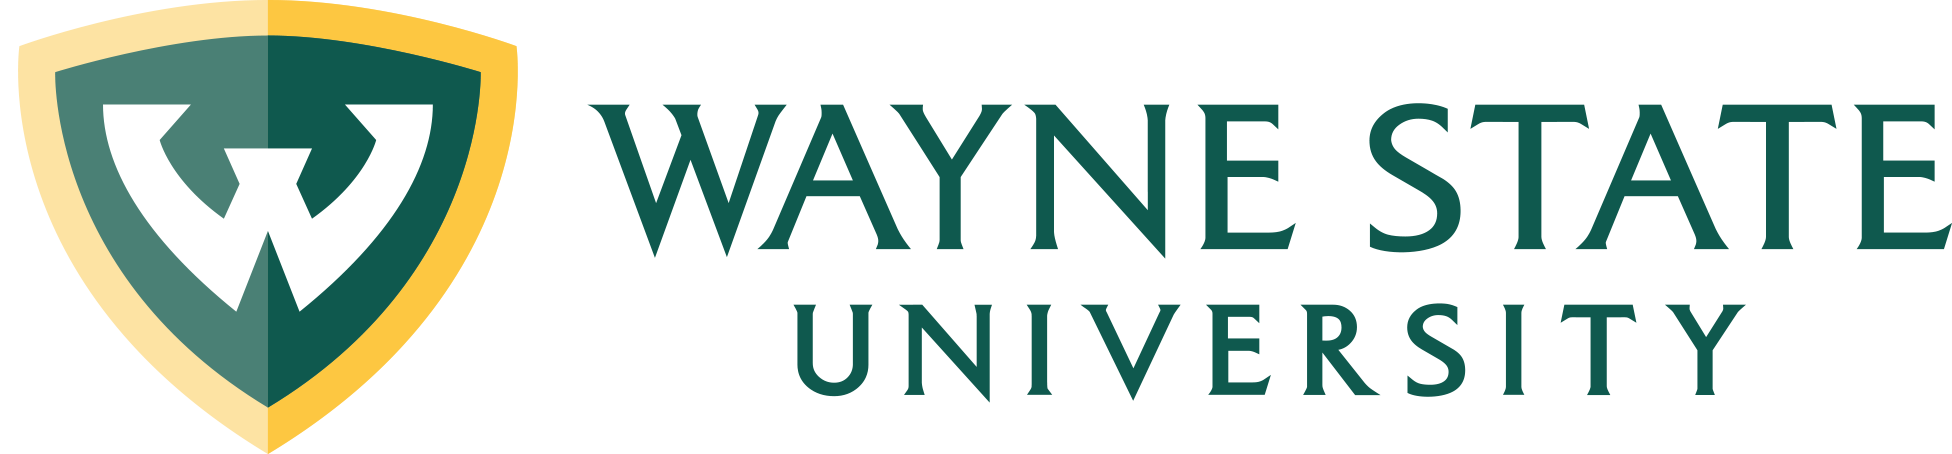 identity guidelines marketing and communications wayne state